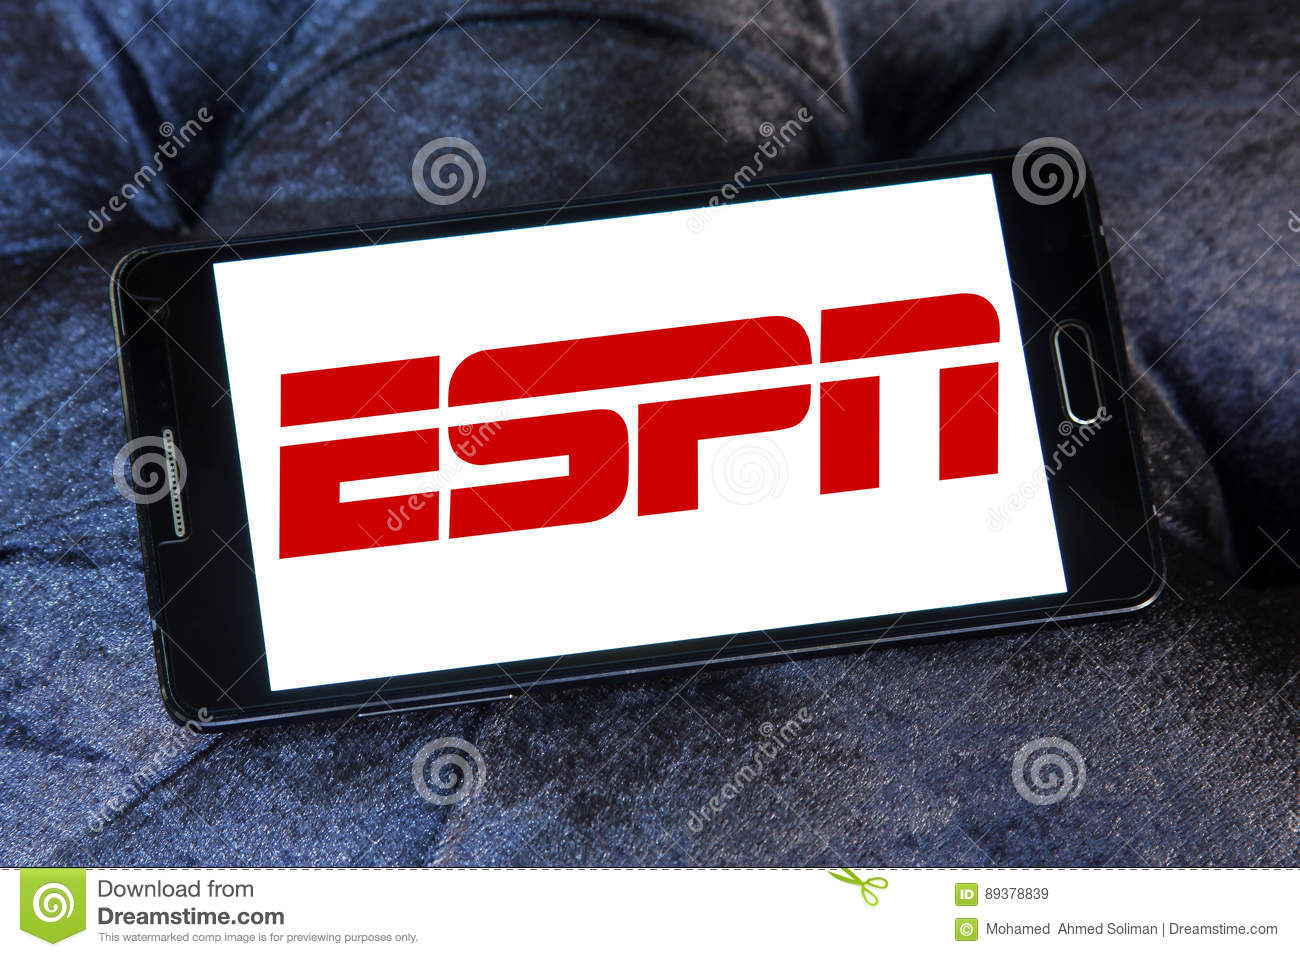 Espn Logo Editorial Stock Image Image Of Battle Business 89378839